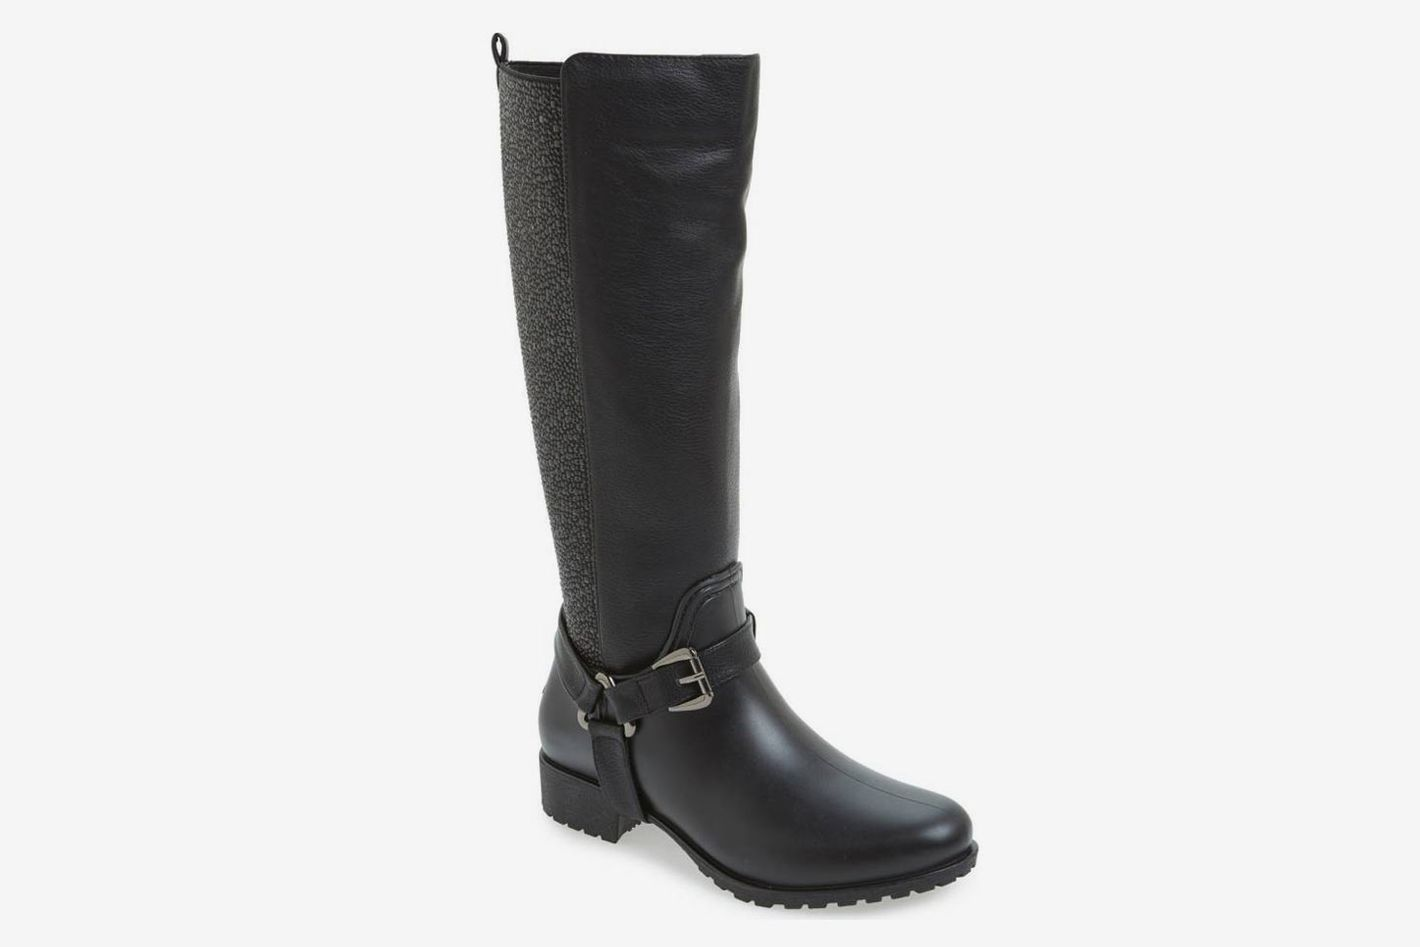 237ec0a2d2b5 DÄV  Kingston  Water Resistant Sparkle Boot